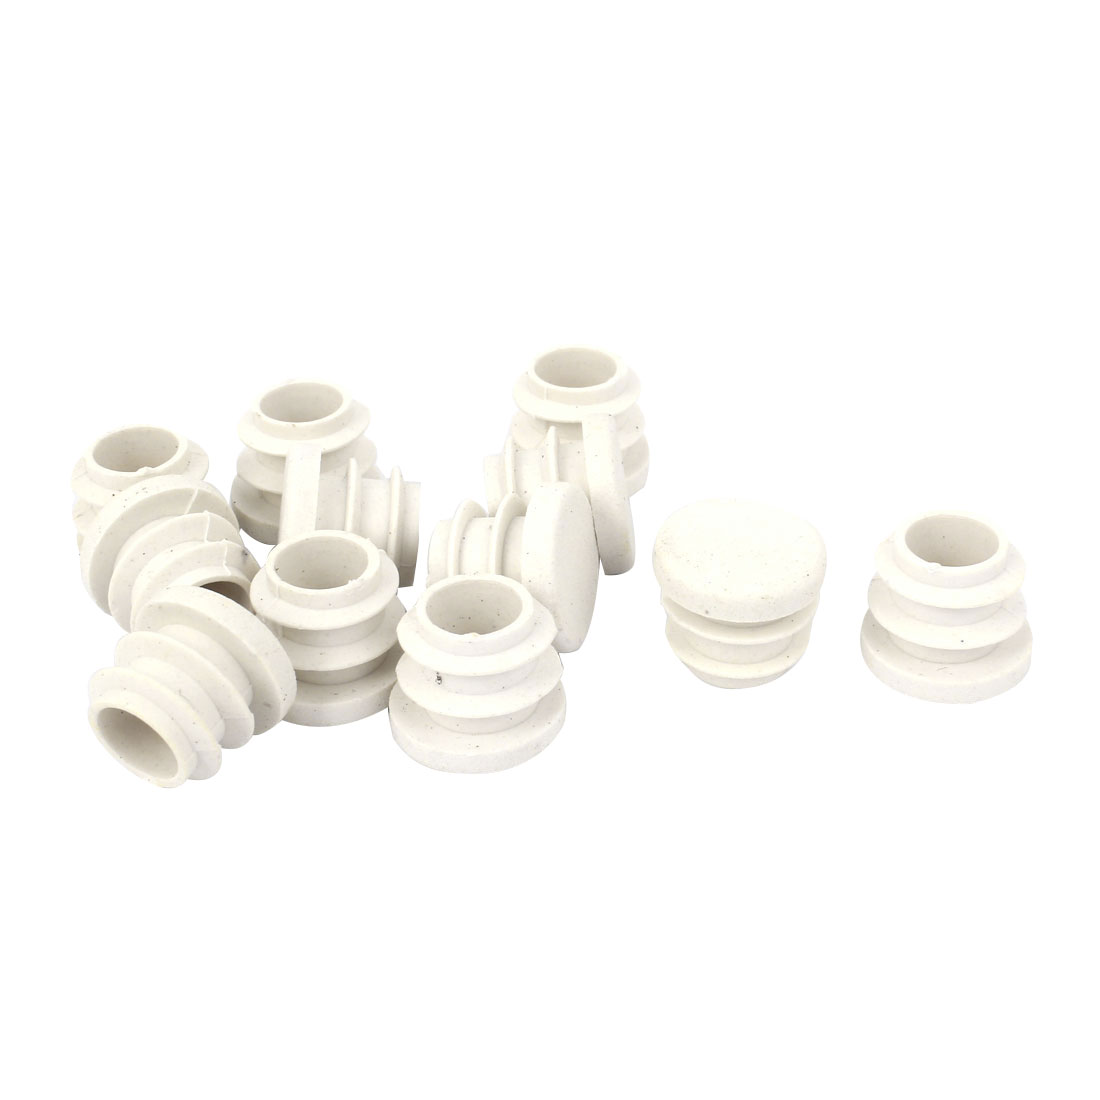 15mm Dia White Plastic Blanking End Cap Caps Tube Pipe Inserts Bung 12 Pcs